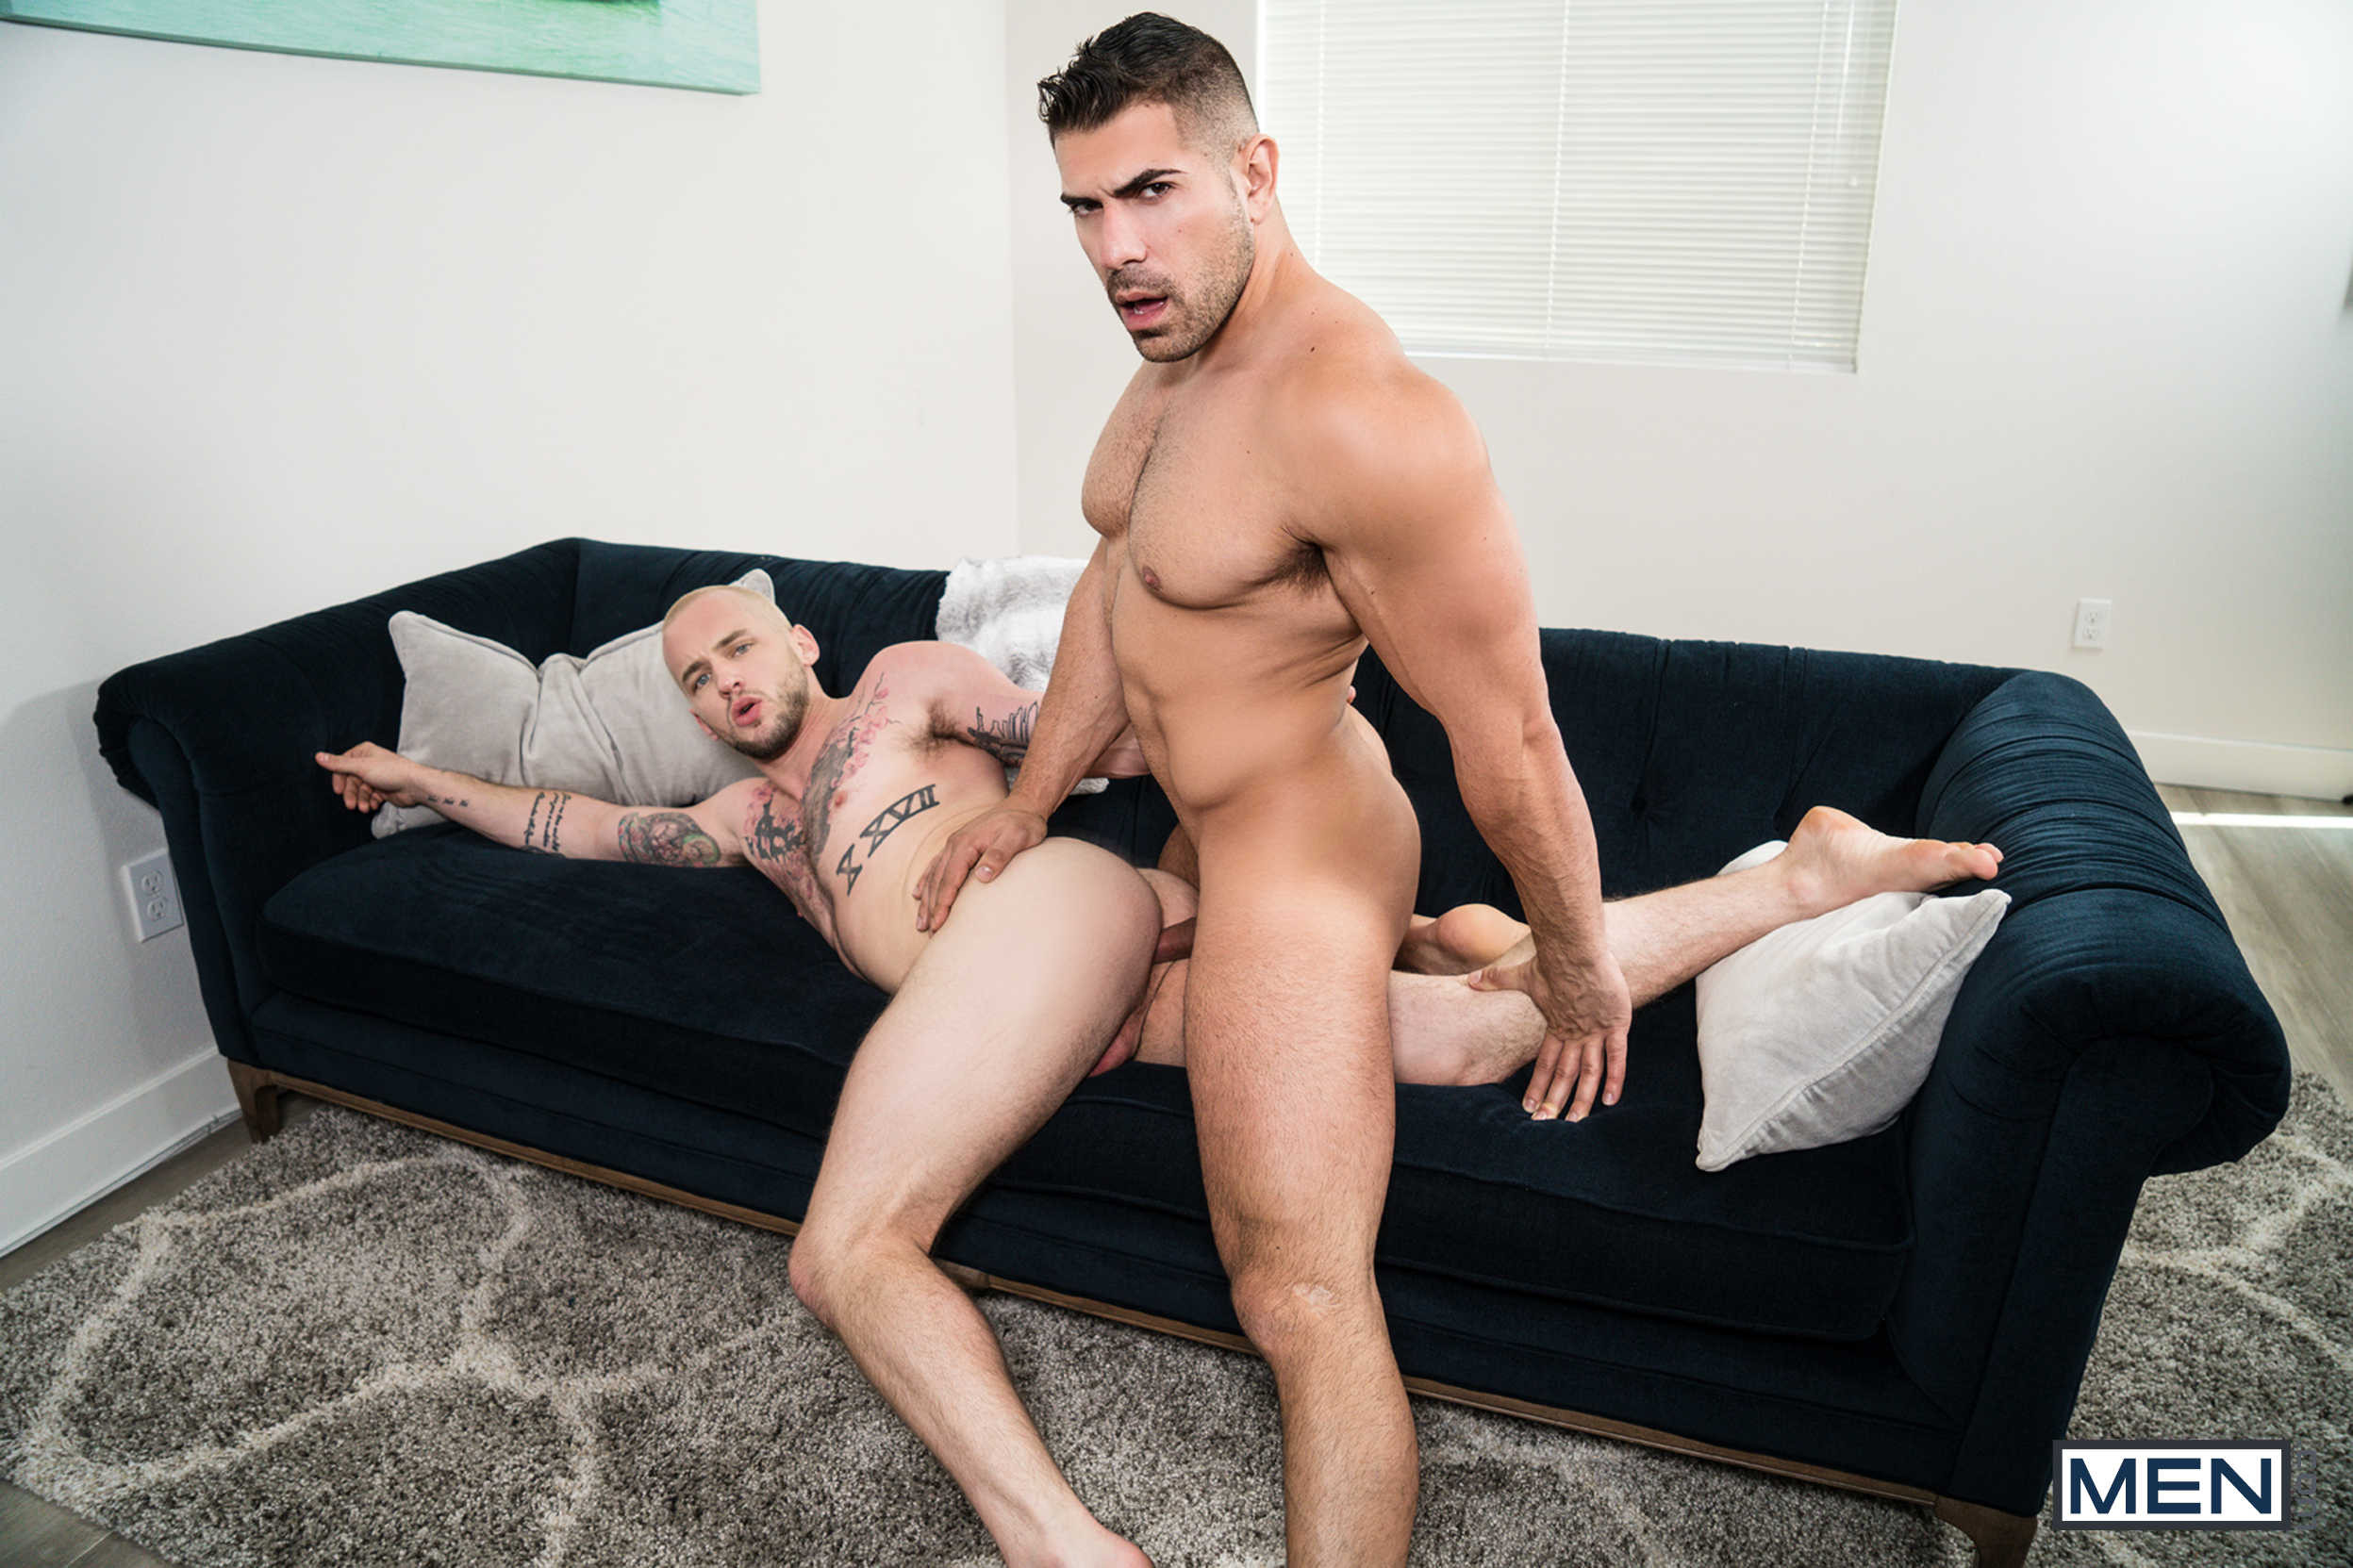 young boys tight asshole gay nothing will stop them from fucking